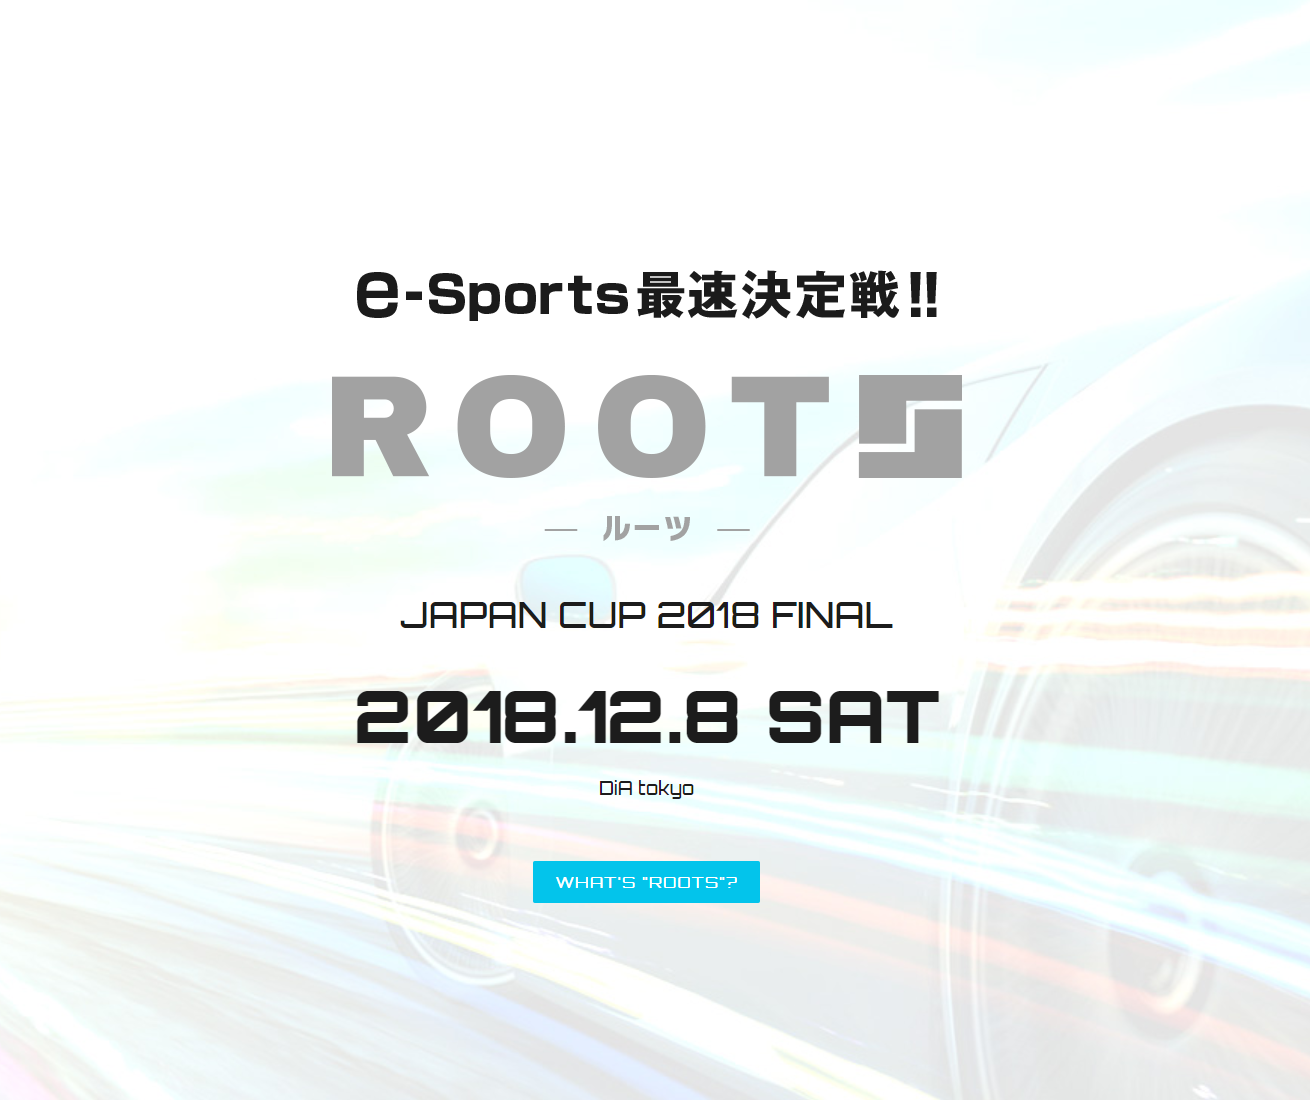 【2018.12.08 ROOTS~e-Sports最速決定戦!!-JAPAN CUP 2018 FINAL】